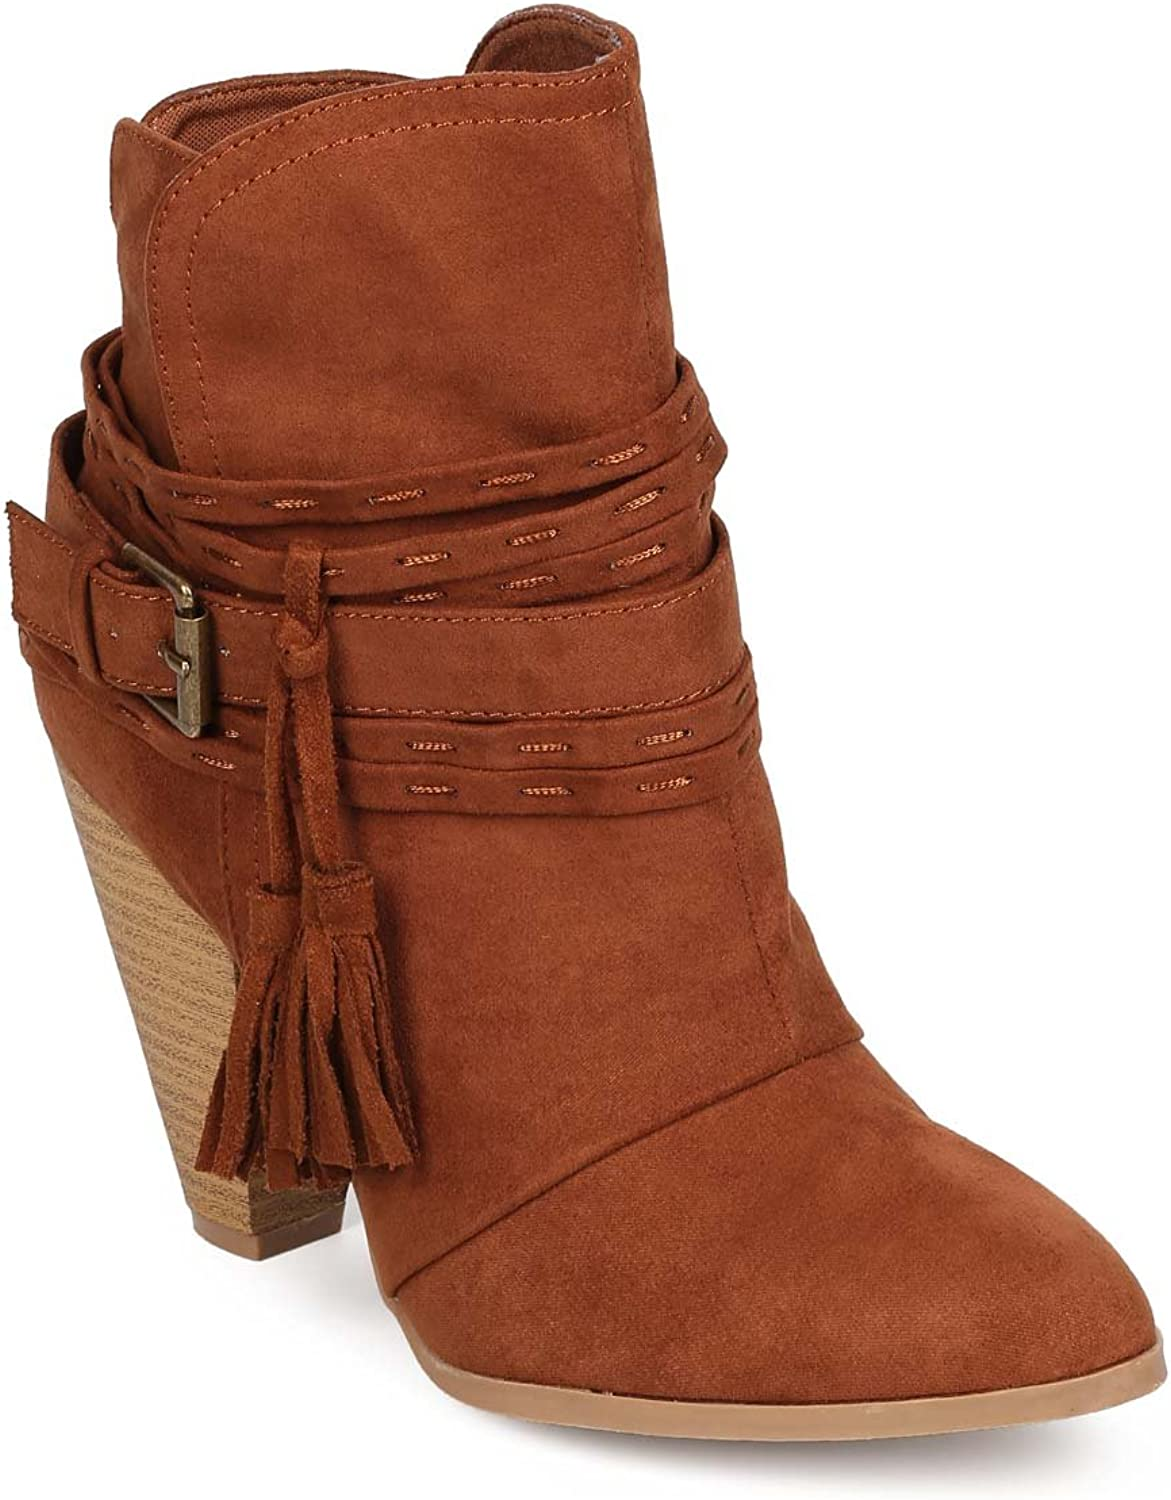 Qupid EA99 Women Suede Pointy Toe Tassel Wrapped Western Bootie - Rust